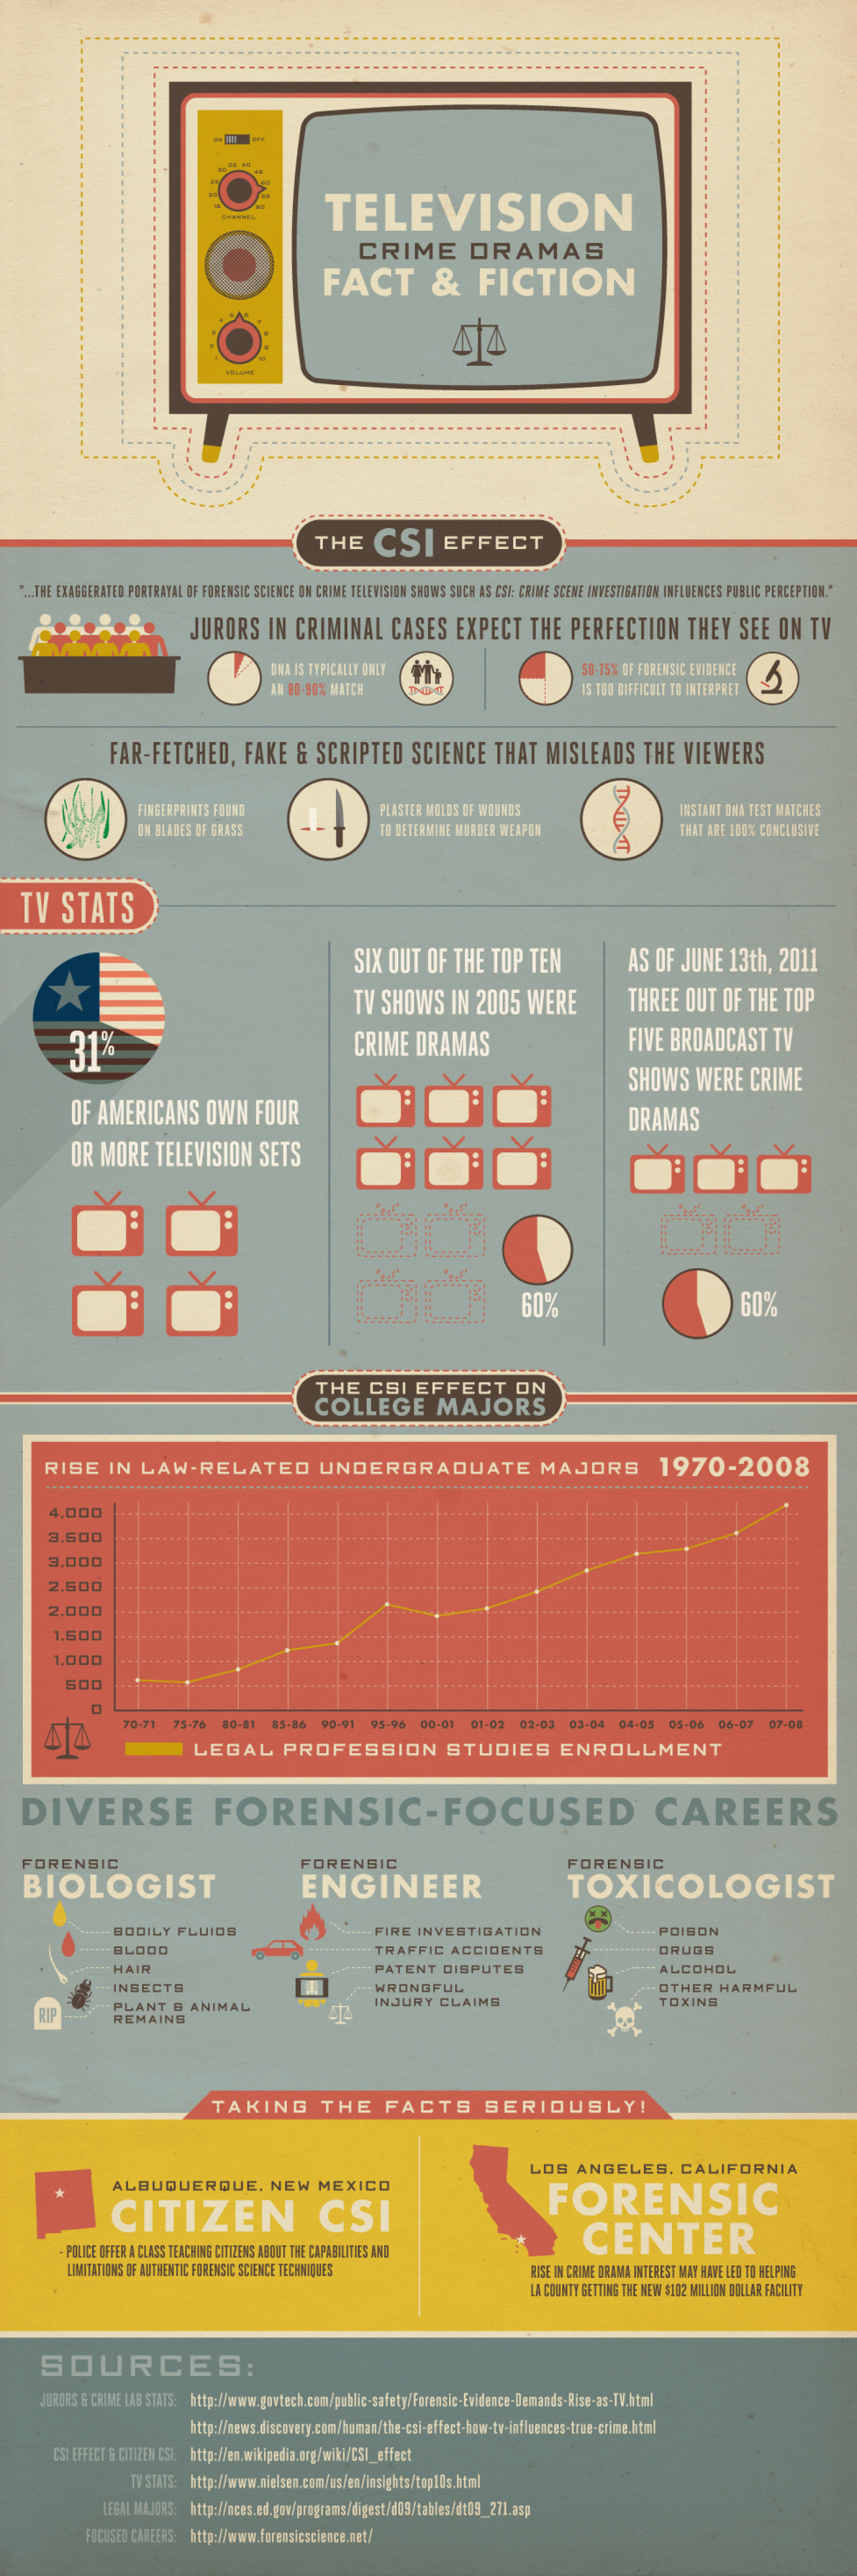 Television Crime Dramas: Fact & Fiction Infographic